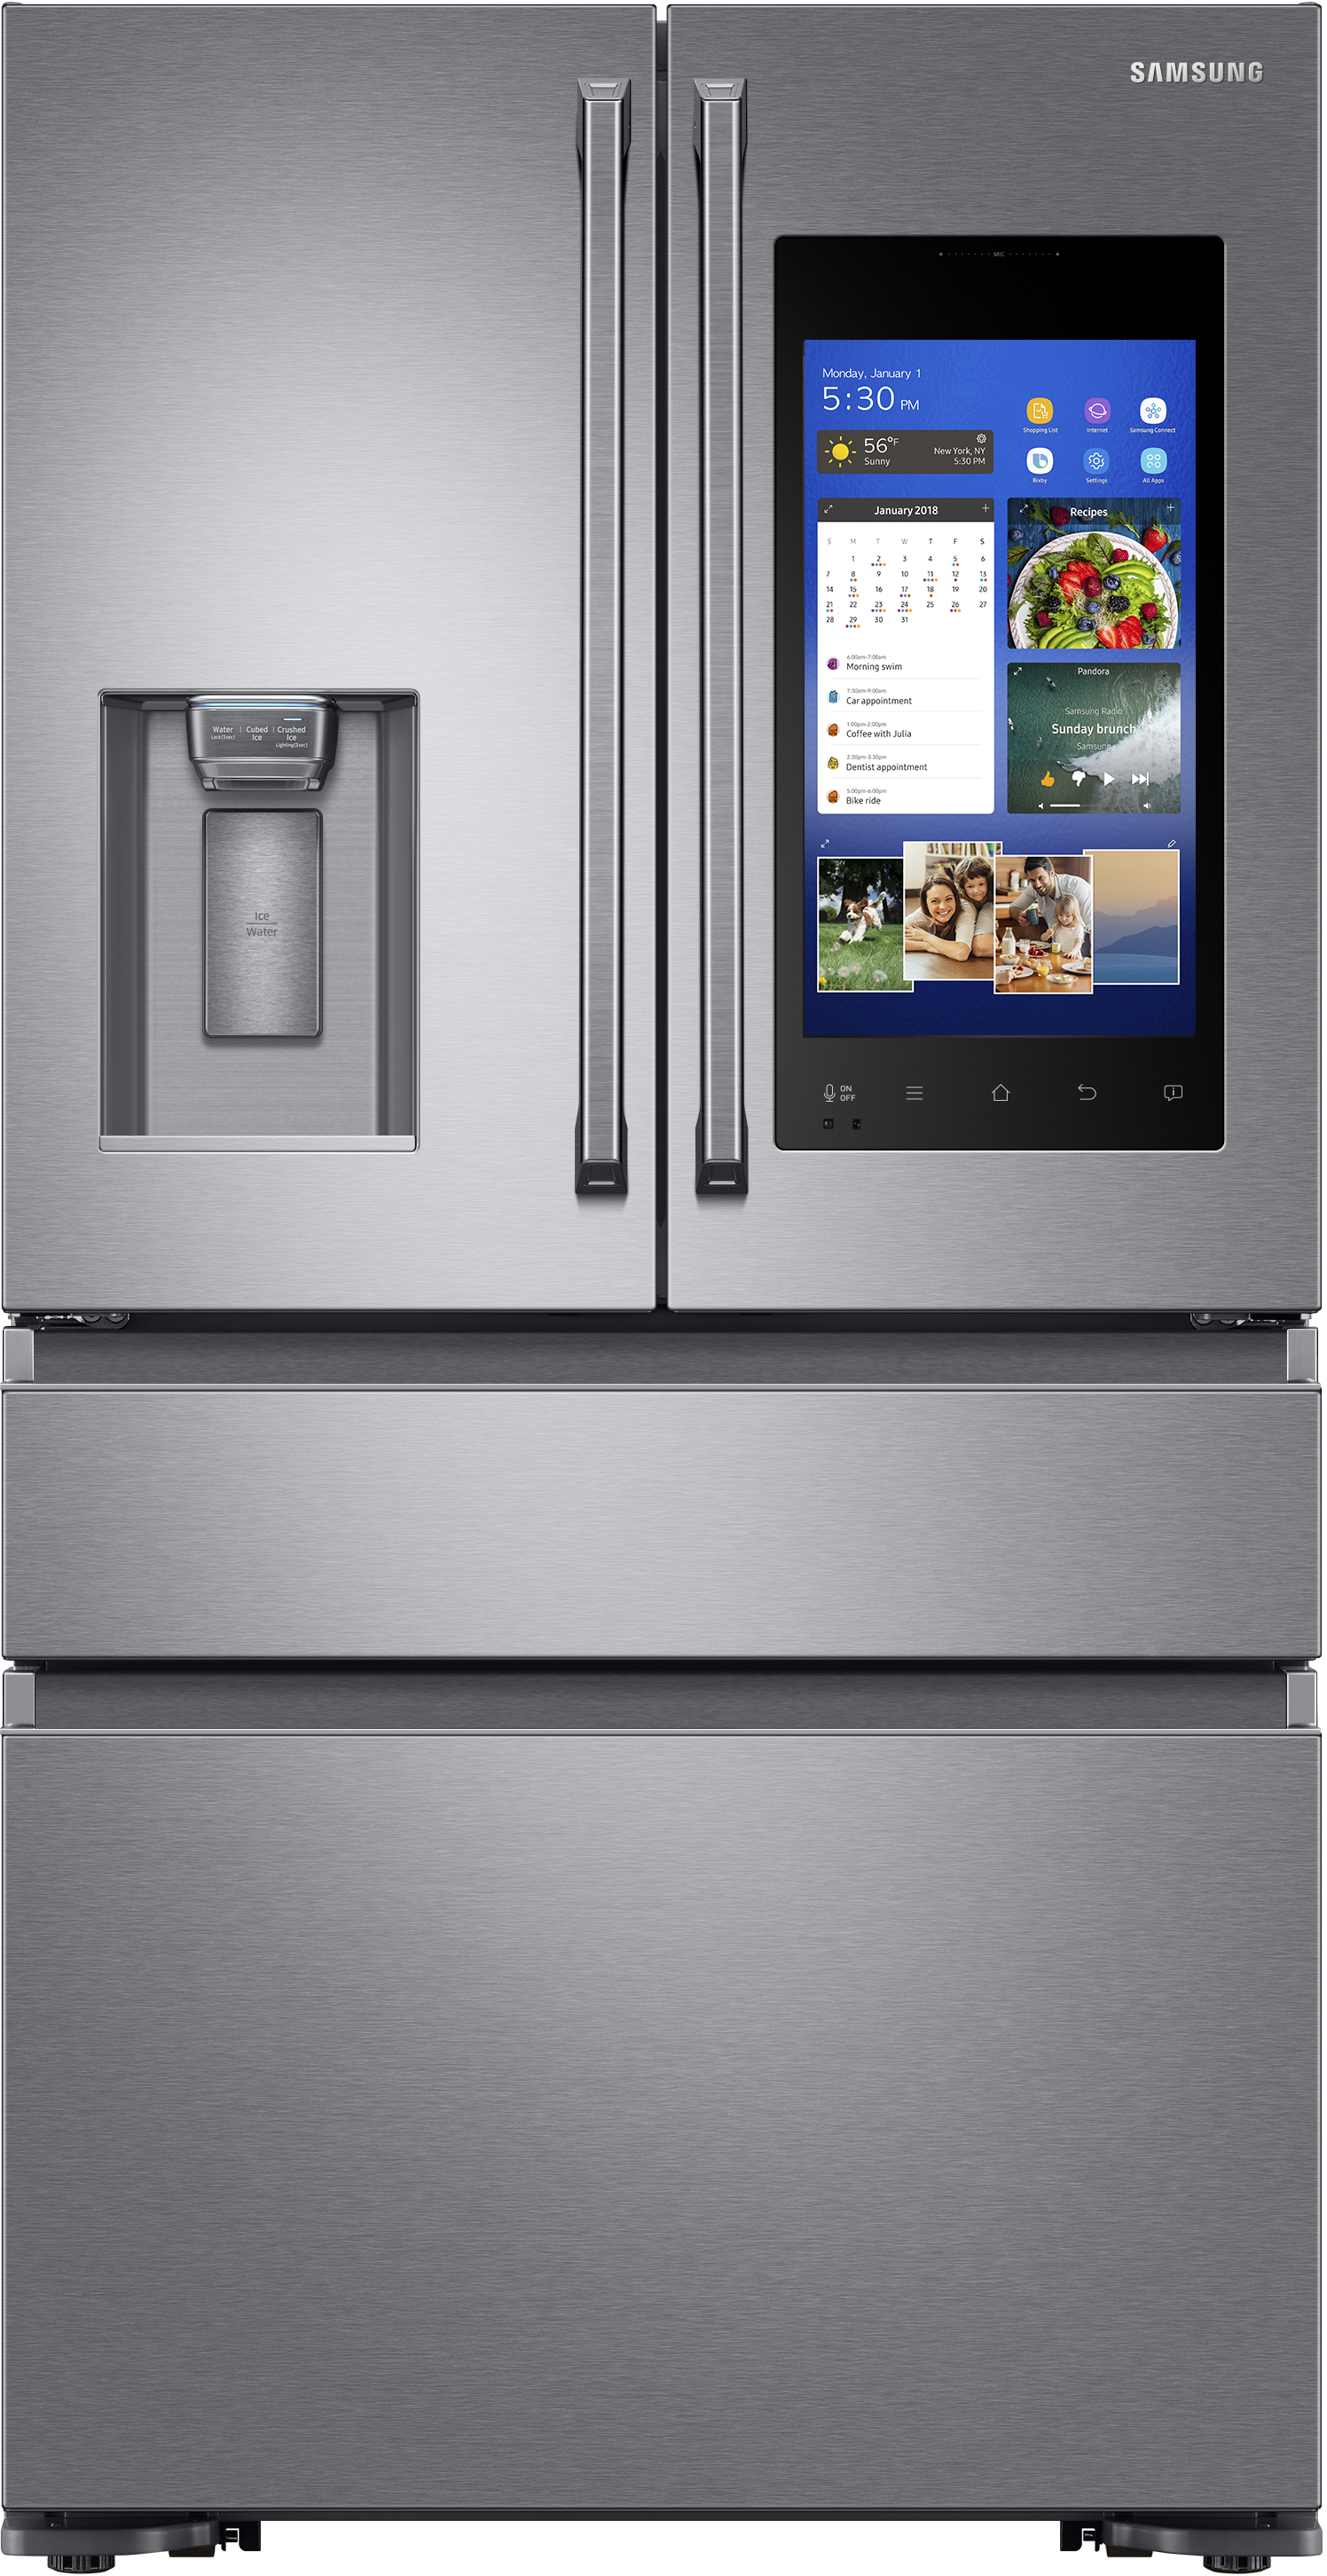 Samsung 36 Inch 22 2 Cu Ft French Door Refrigerator Stainless